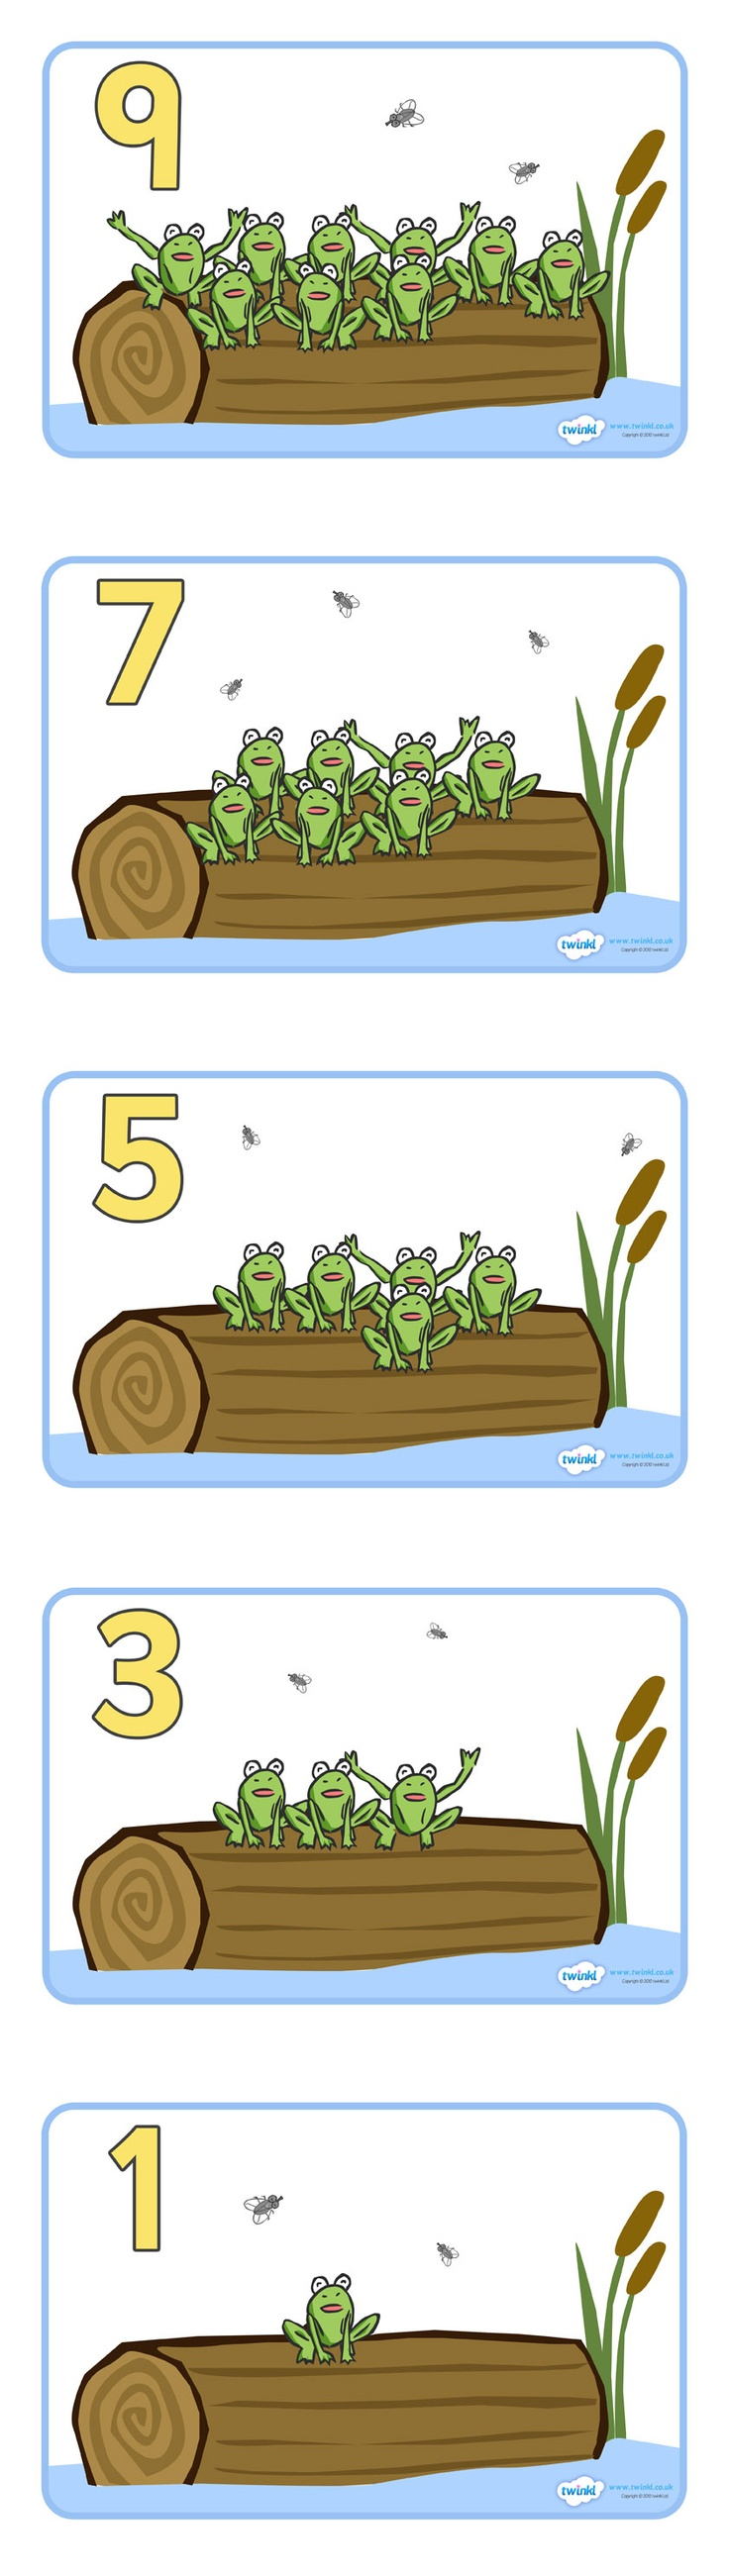 Countdown Display Posters (10 Speckled Frogs )  - Pop over to our site at www.twinkl.co.uk and check out our lovely Numeracy primary teaching resources! numeracy, maths, countdown, posters #Numeracy #Numeracy_Resources